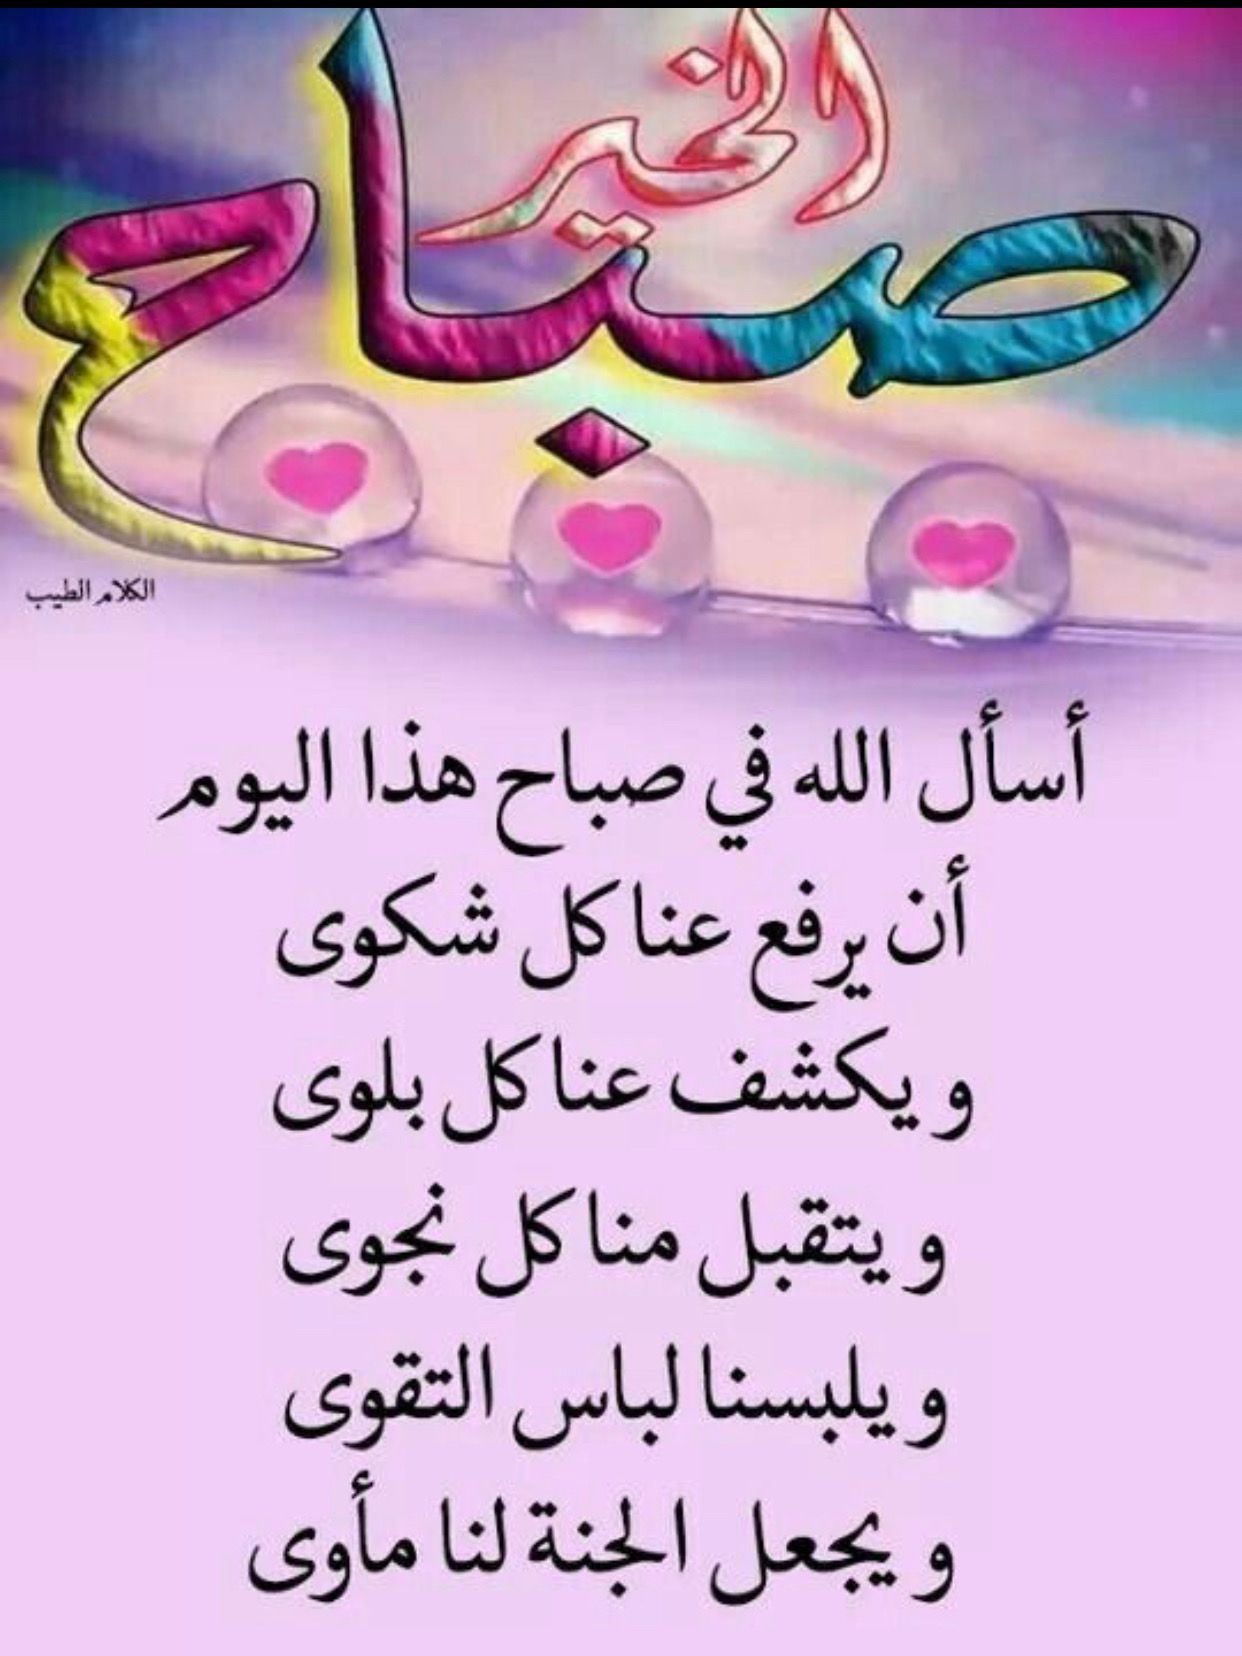 Pin By خليفه On صباح الخير Good Evening Wishes Good Morning Wishes Islamic Pictures